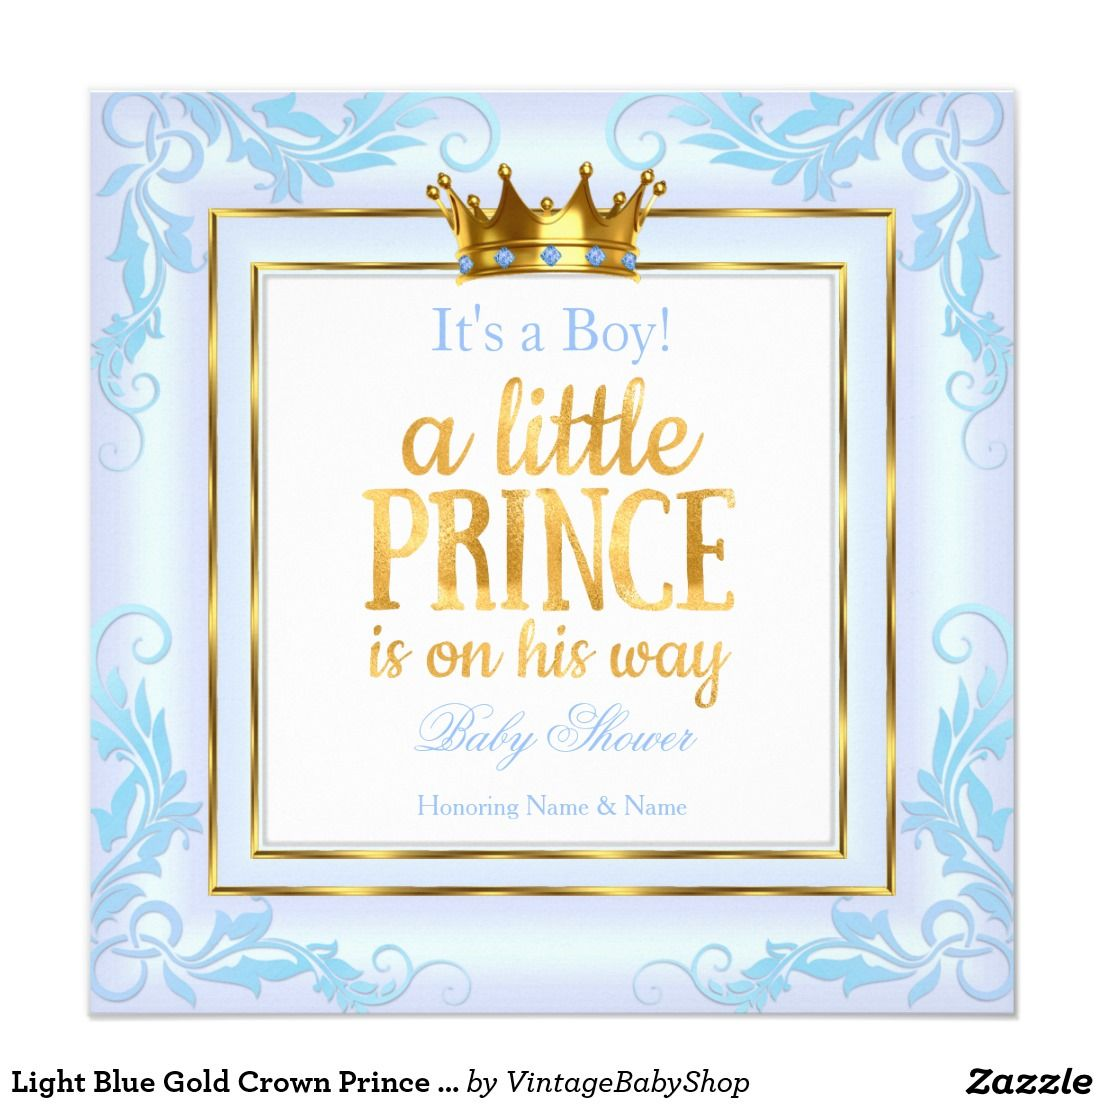 Light Blue Gold Crown Prince Baby Shower Boy Card | Baby shower boys ...